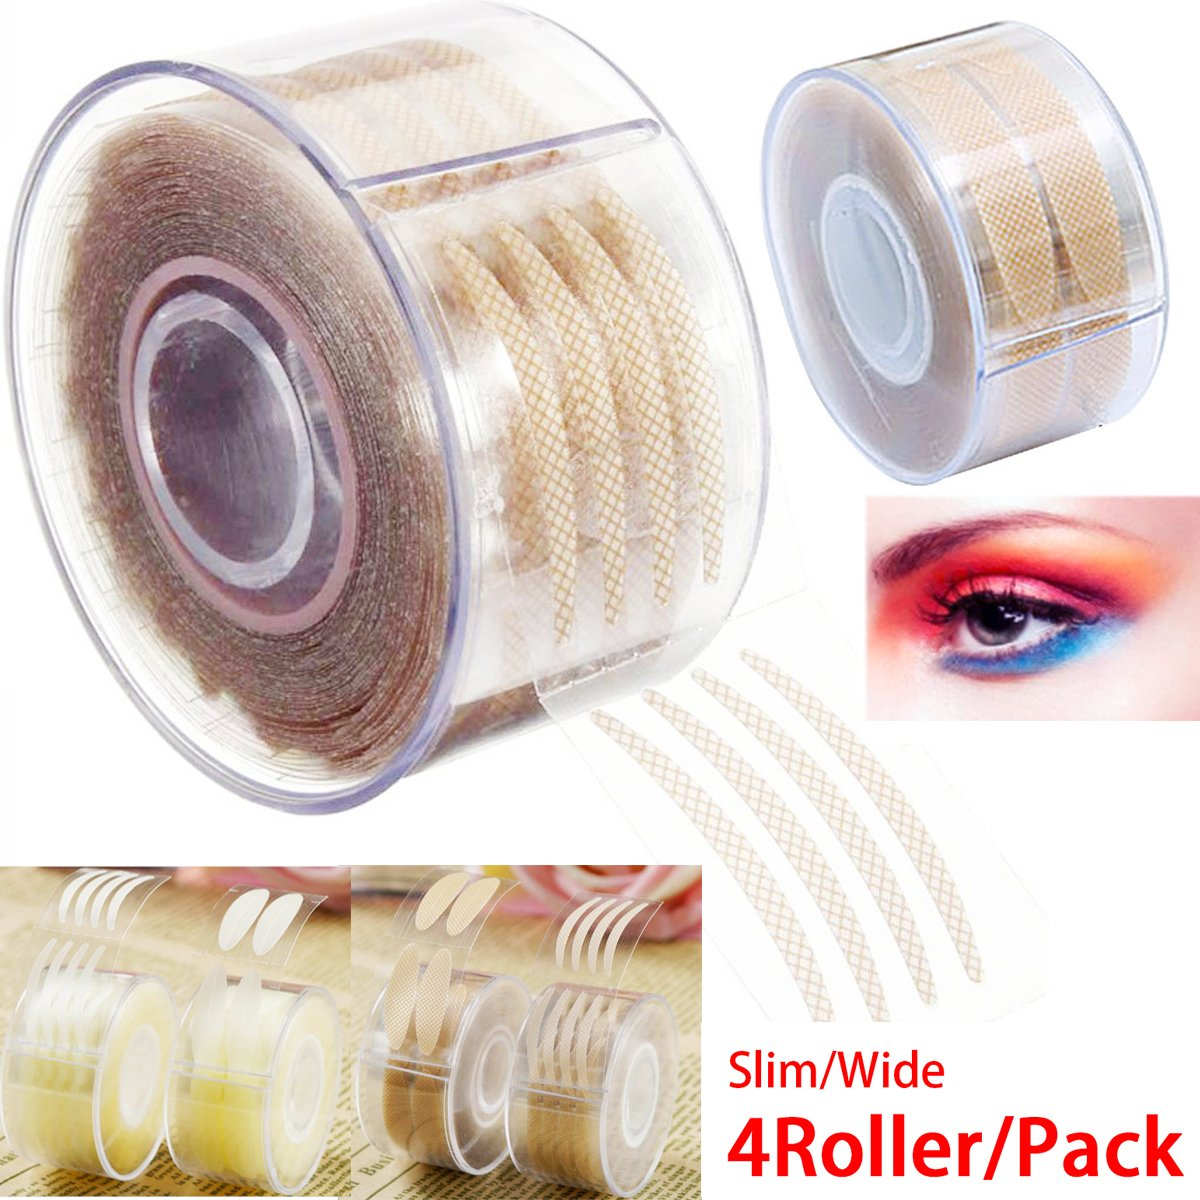 Eye tape double eyelid tape invisible eye stickers natural waterproof eye tape adhesive magic Charm big eye fiber glue tapes 4 Roller + Shaped Fork